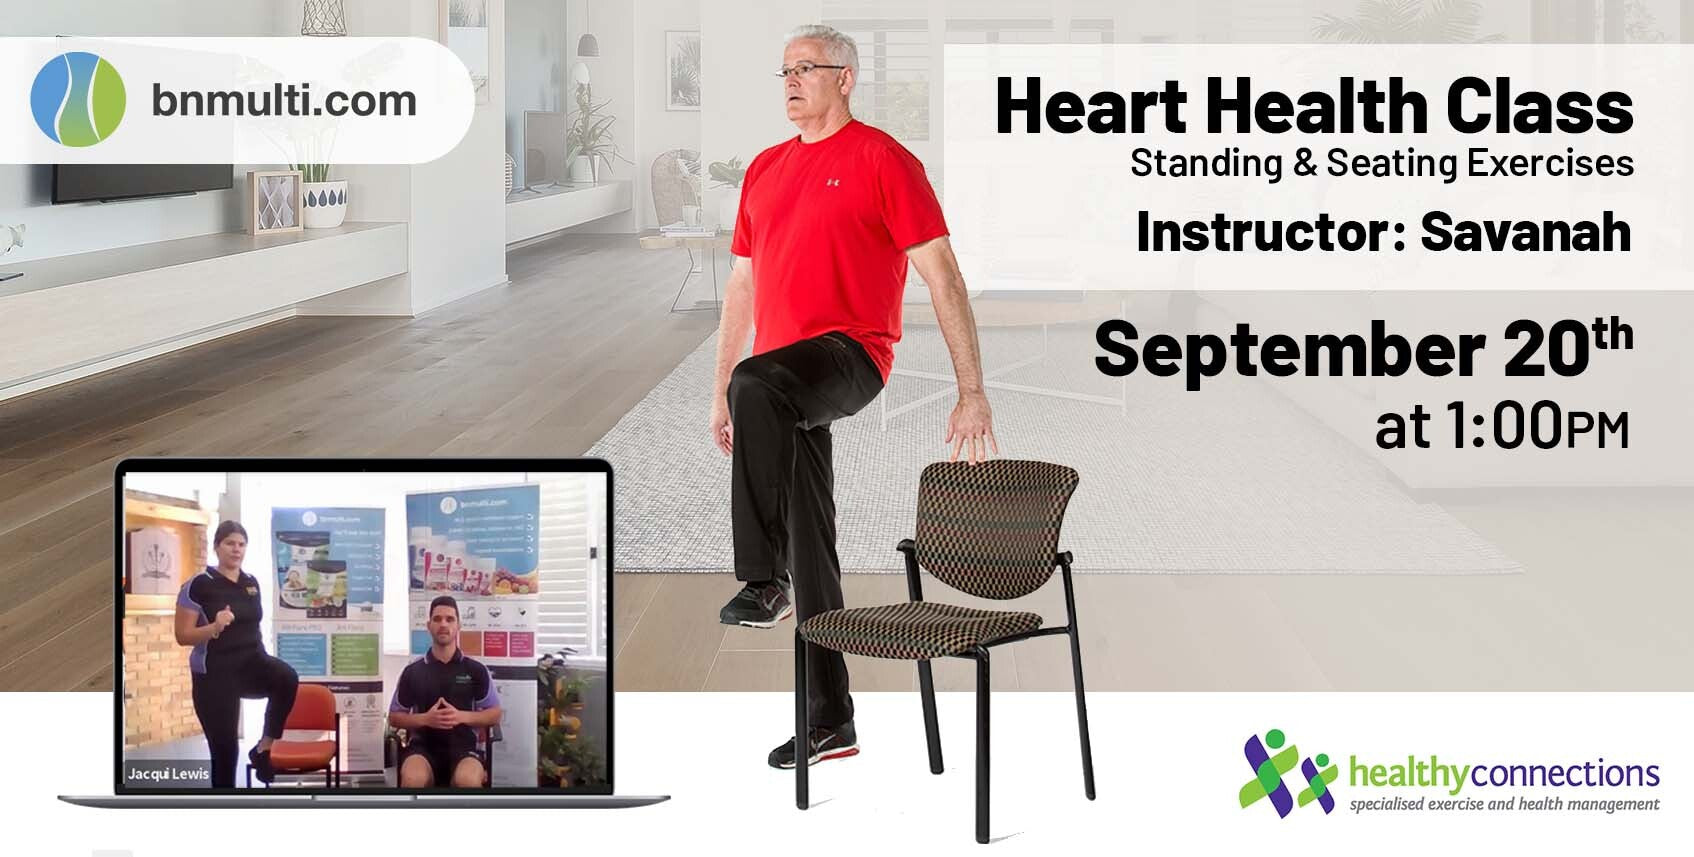 standing and seating exercises cardiovascular